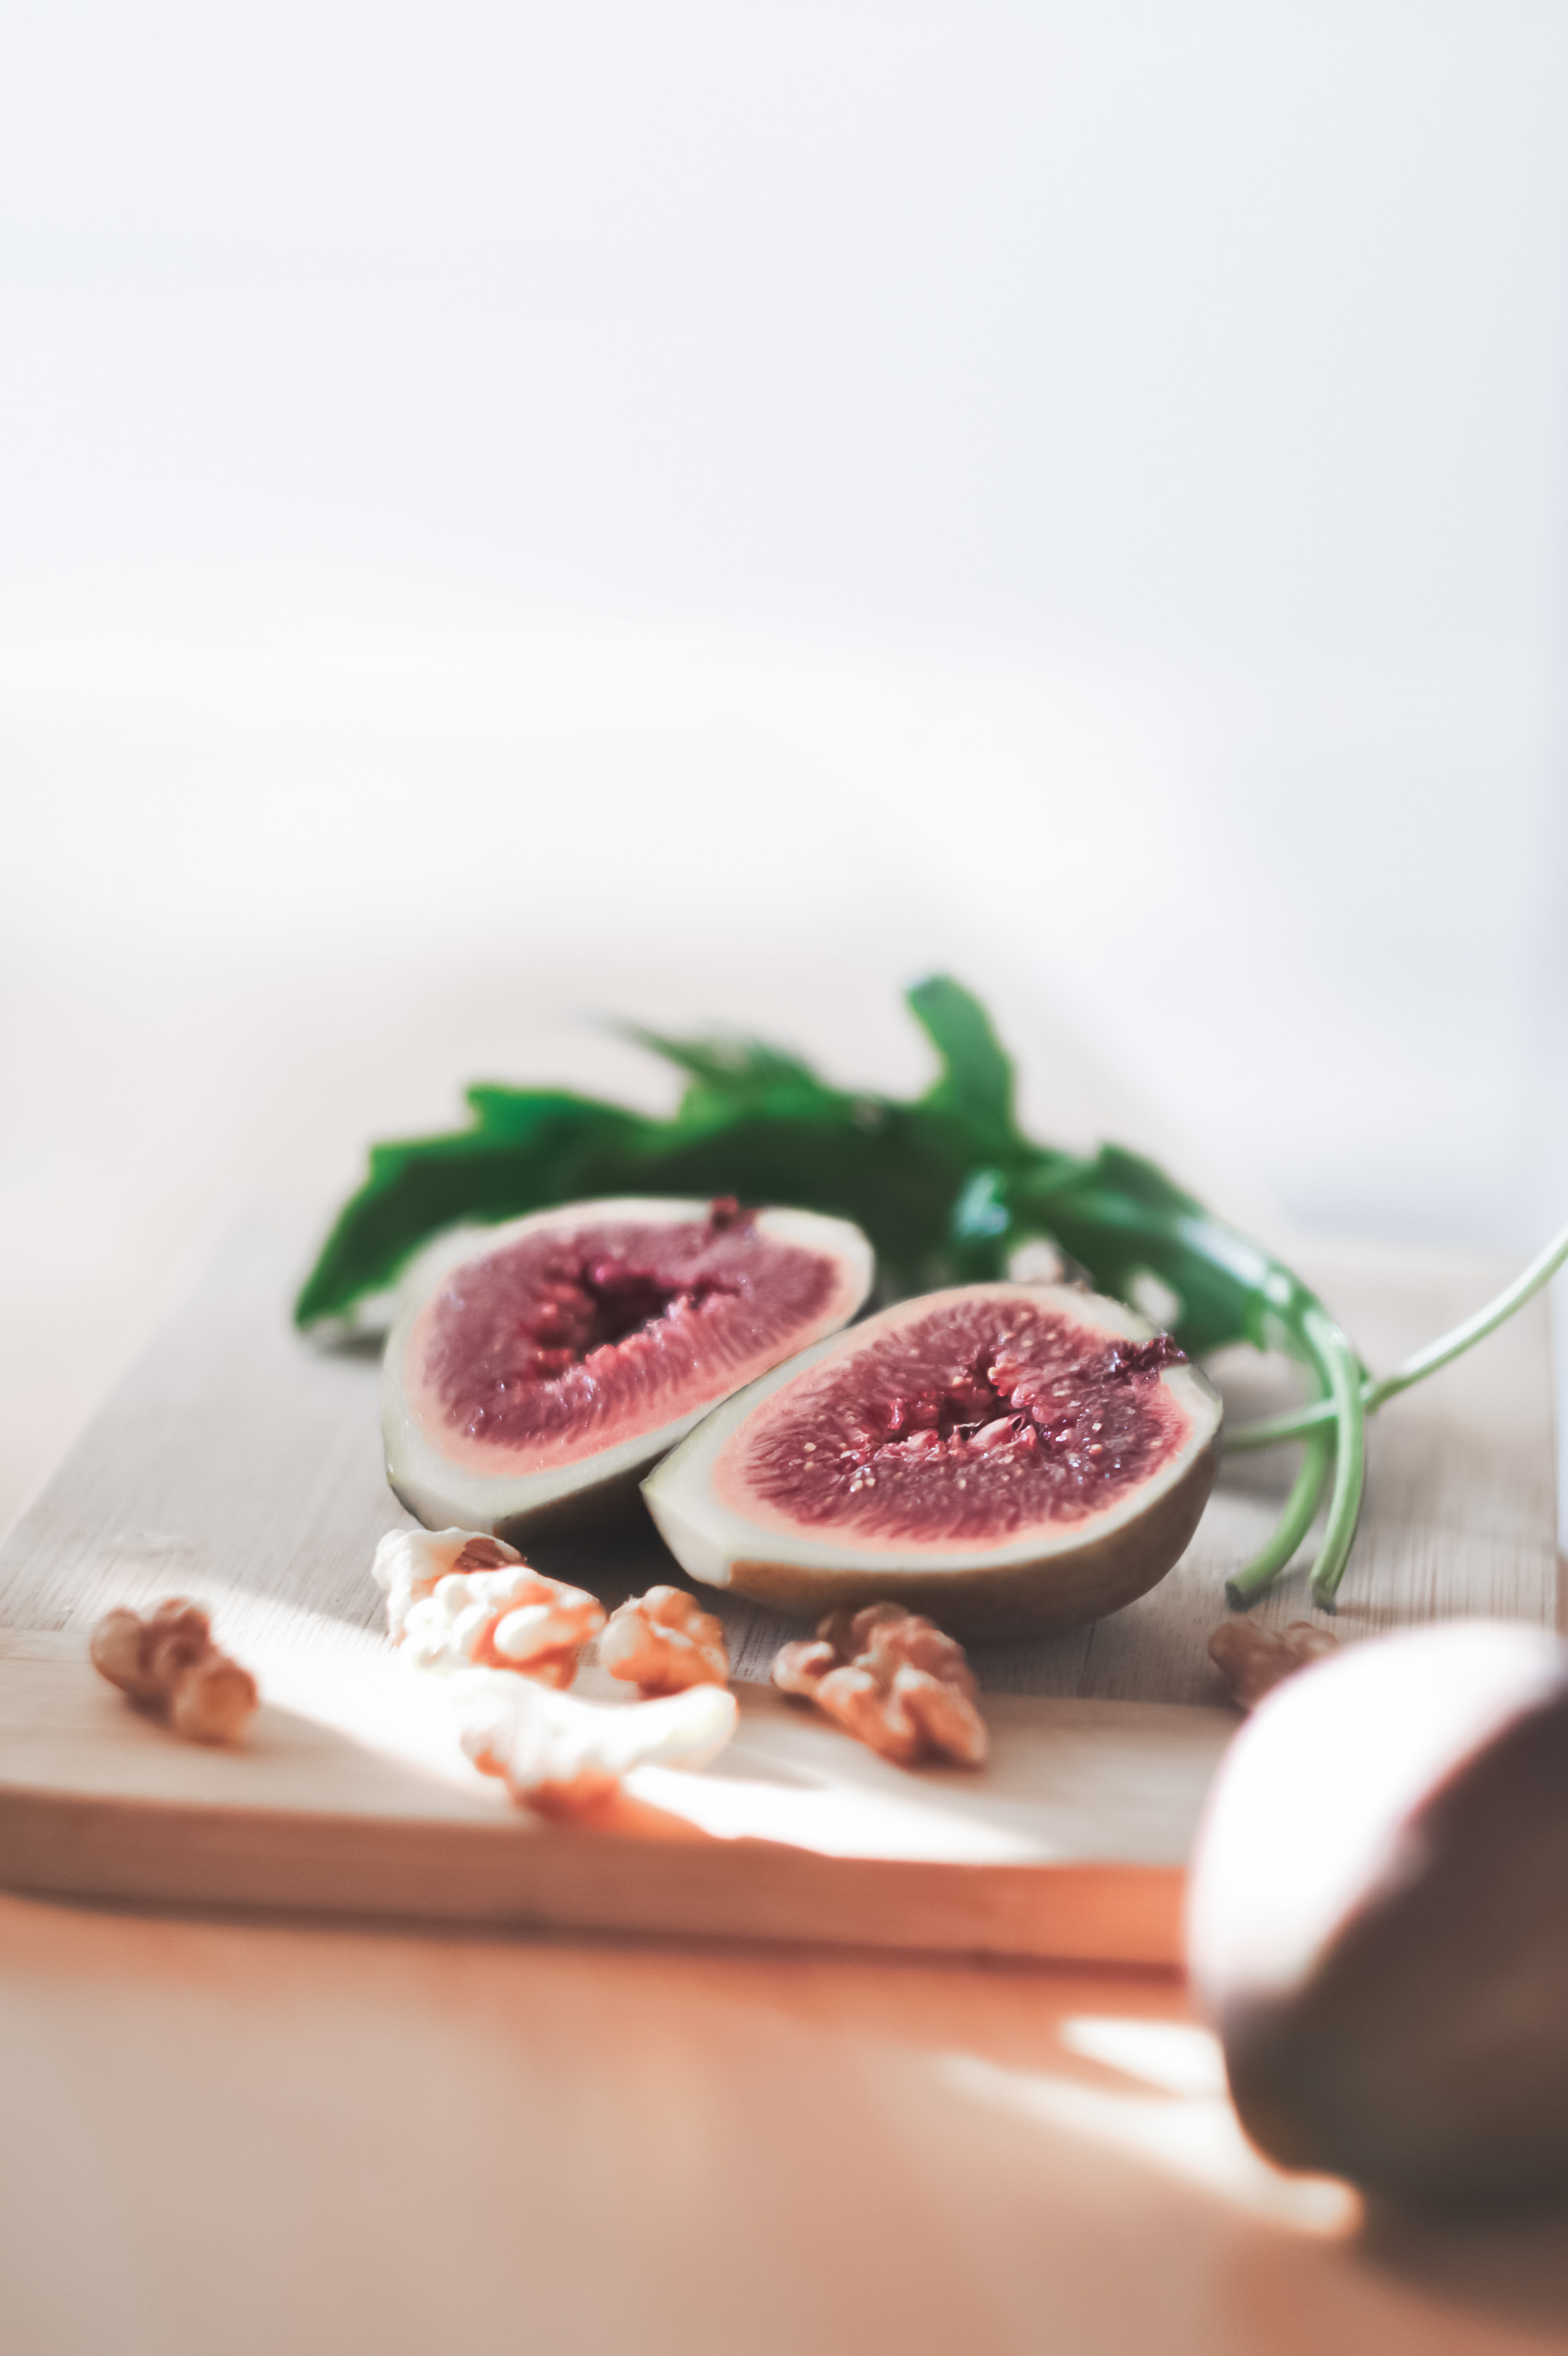 chopping board with figs, walnuts and rocket